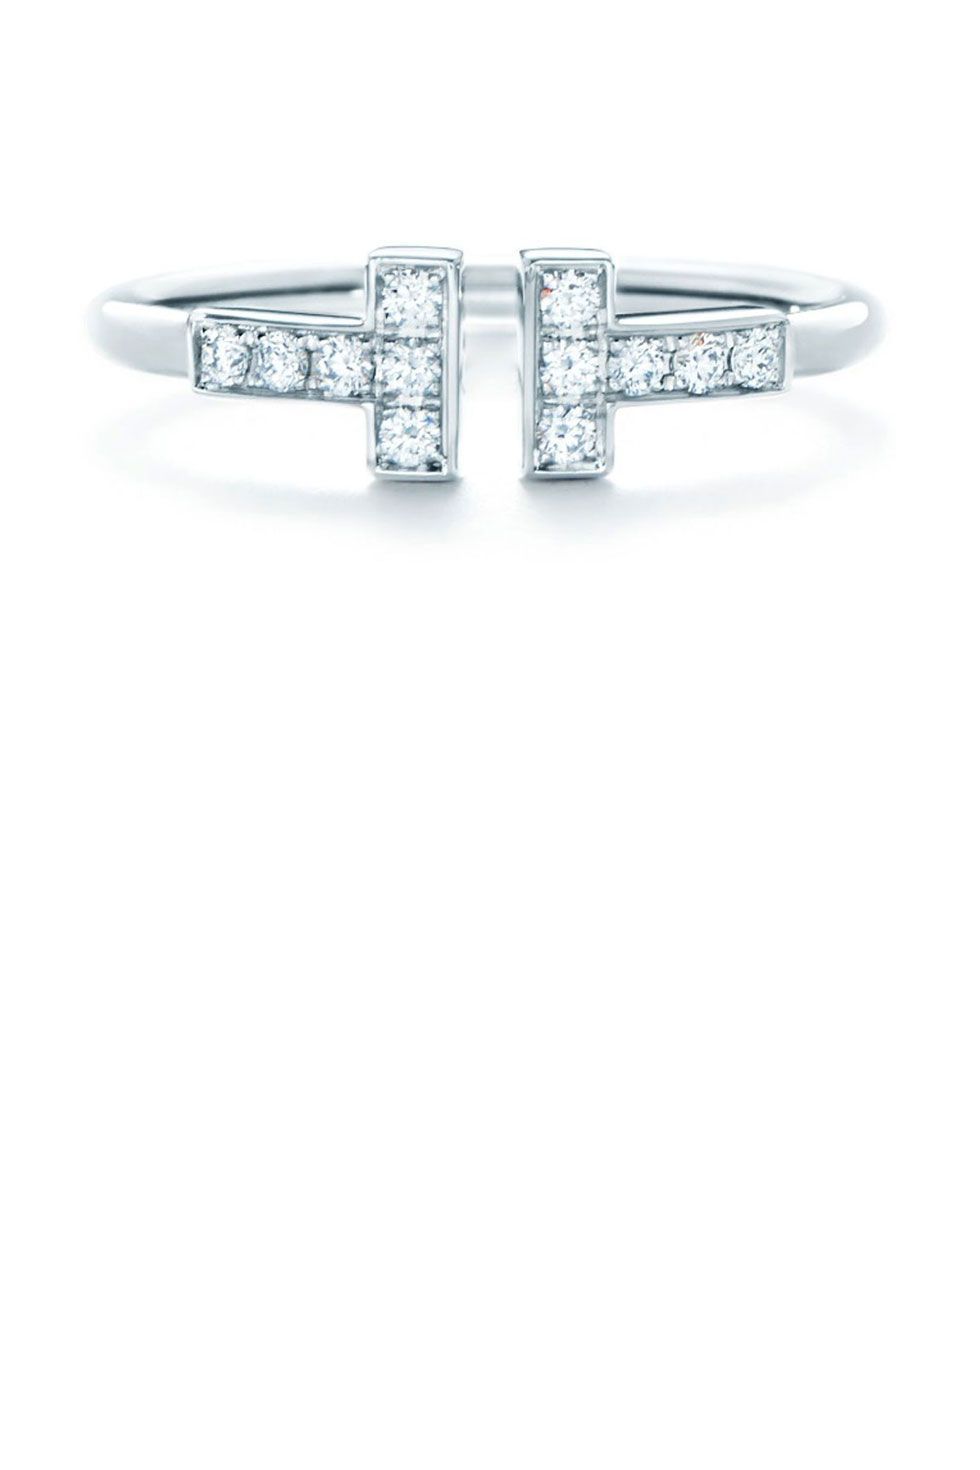 "<p>Tiffany T Wire Ring, $1,600; <a href=""http://www.tiffany.com/jewelry/rings/tiffany-t-wire-ring-GRP07760?fromGrid=1&search_params=p+1-n+10000-c+-1-s+11-r+-t+t%20wire%20rin-ni+1-x+-lr+-hr+-ri+-mi+-pp+0+1&search=1&origin=search&searchkeyword=t%20wire%20ring&trackpdp=search&fromcid=-1"" target=""_blank"">tiffany.com</a></p>"